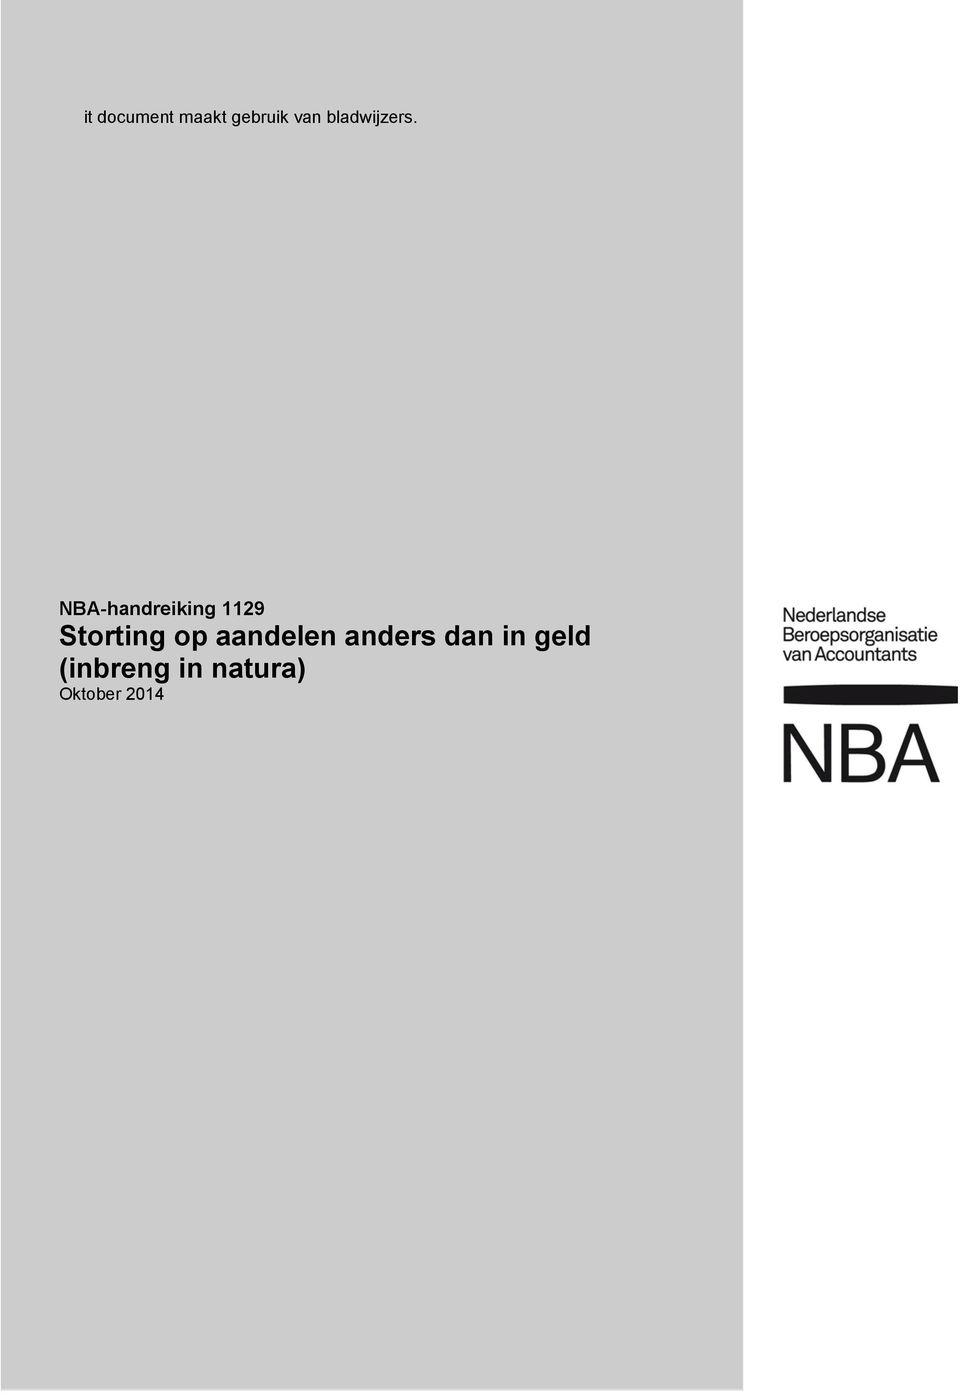 NBA-handreiking 1129 Storting op